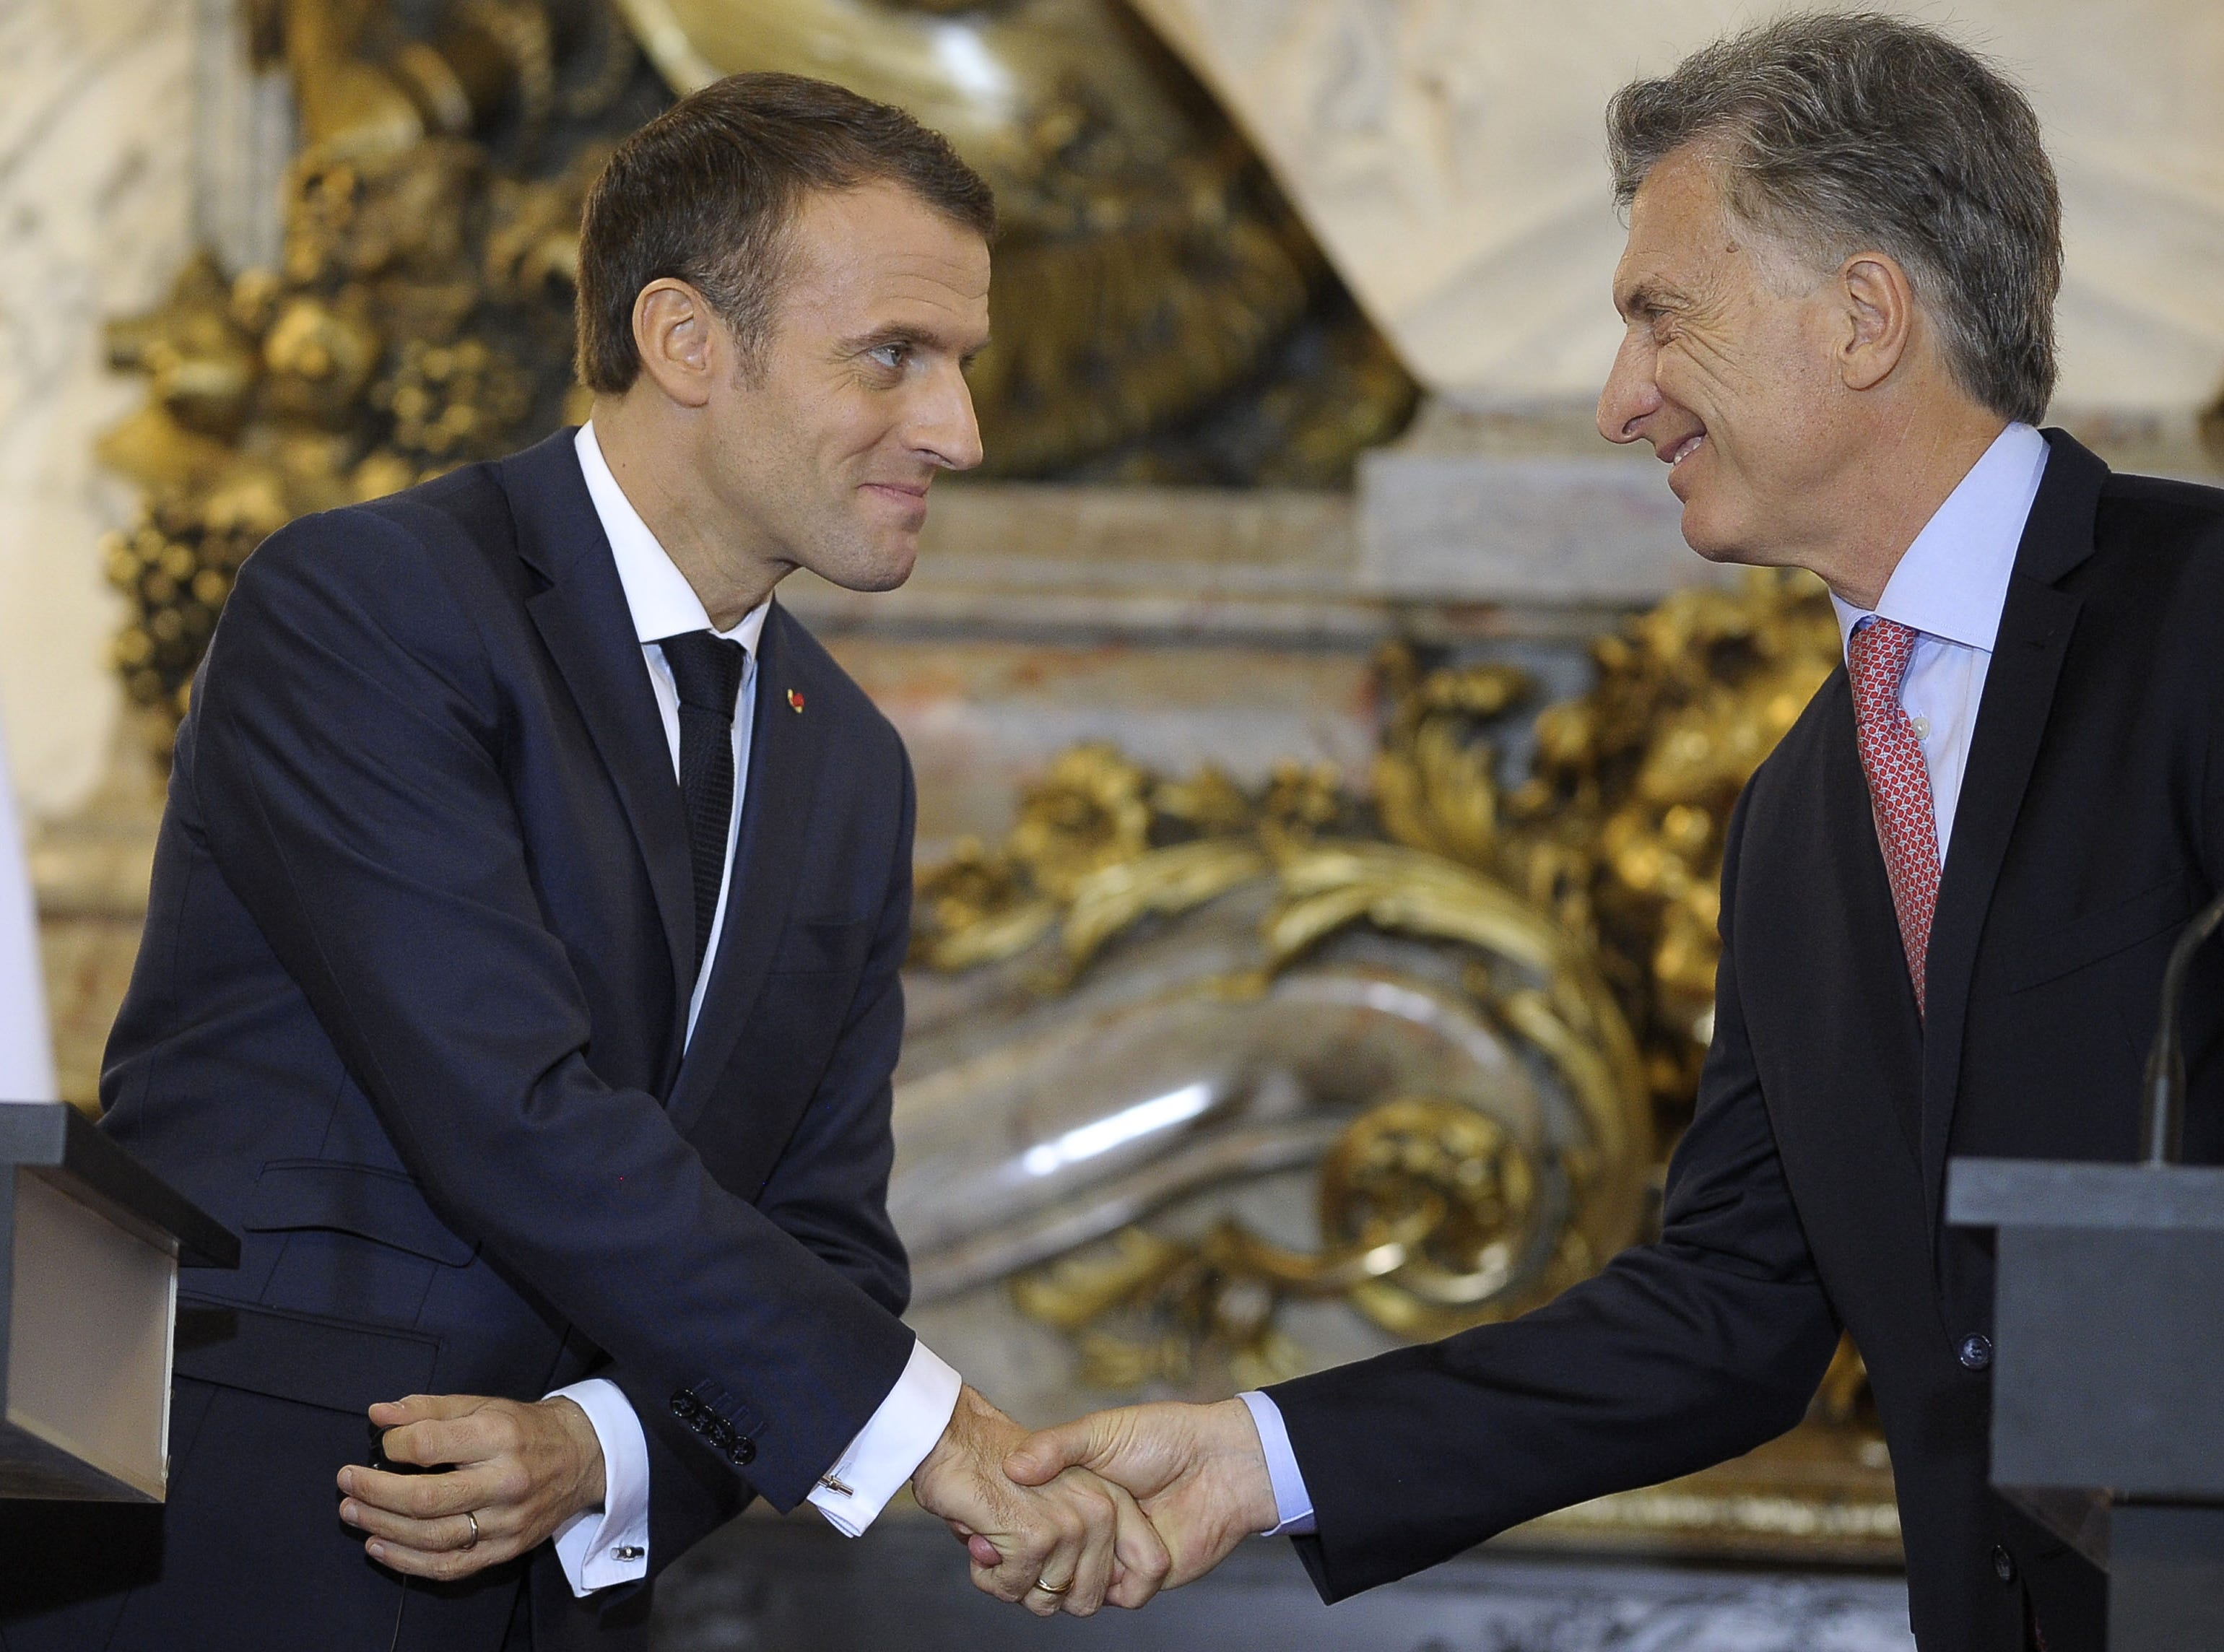 """France's President Emmanuel Macron (L) shakes hands with Argentina's President Mauricio Macri during a press conference, at the Casa Rosada presidential palace in Buenos Aires, on November 29, 2018, on the eve of the G20 Leaders' Summit. - Macron arrived on the eve for a two-day G20 summit beginning on November 30 likely to be dominated by simmering international tensions over trade. In an interview with Argentine daily La Nacion, he warned against the risk of """"a destructive trade war for all"""" emanating from the G20 discussions. (Photo by JAVIER GONZALEZ TOLEDO / AFP)        (Photo credit should read JAVIER GONZALEZ TOLEDO/AFP/Getty Images)"""